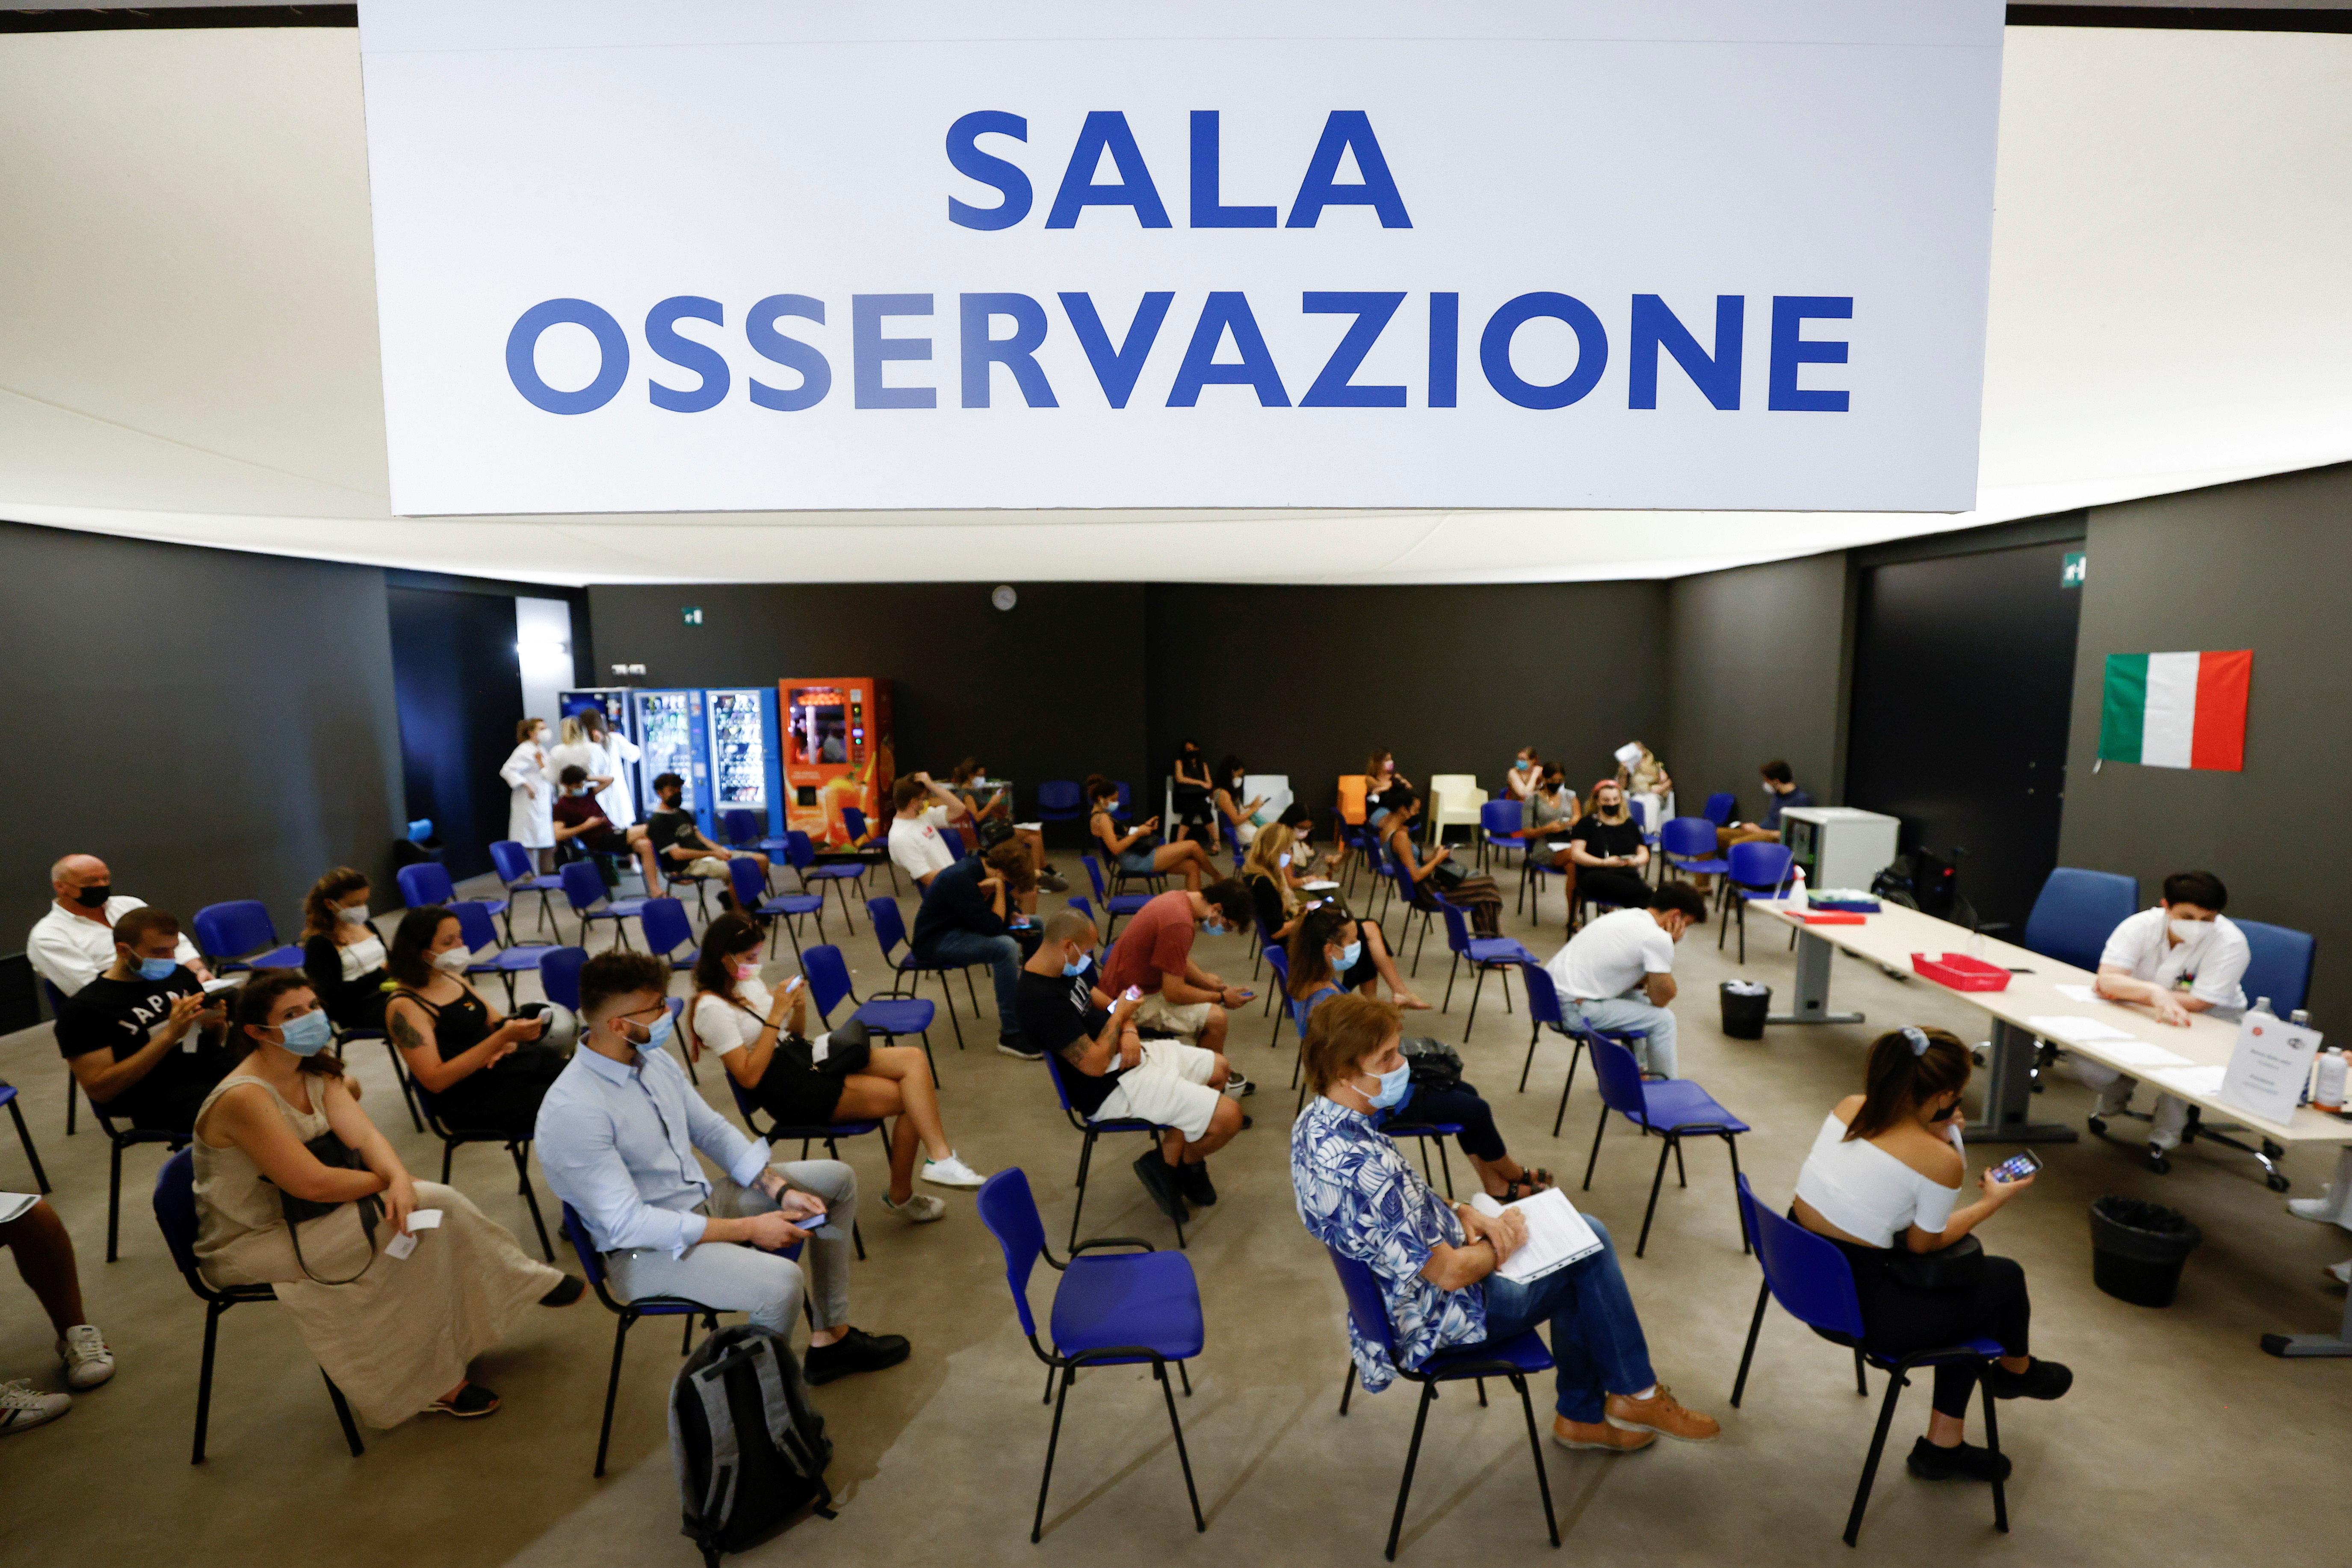 People wait in the observation room after receiving a dose of the Moderna vaccine against the coronavirus disease (COVID-19), a day before the wider Green Pass restrictions, where Italians will need proof of immunity to access an array of services and leisure activities, come into force, at the Music Auditorium in Rome, Italy, August 5, 2021. REUTERS/Guglielmo Mangiapane